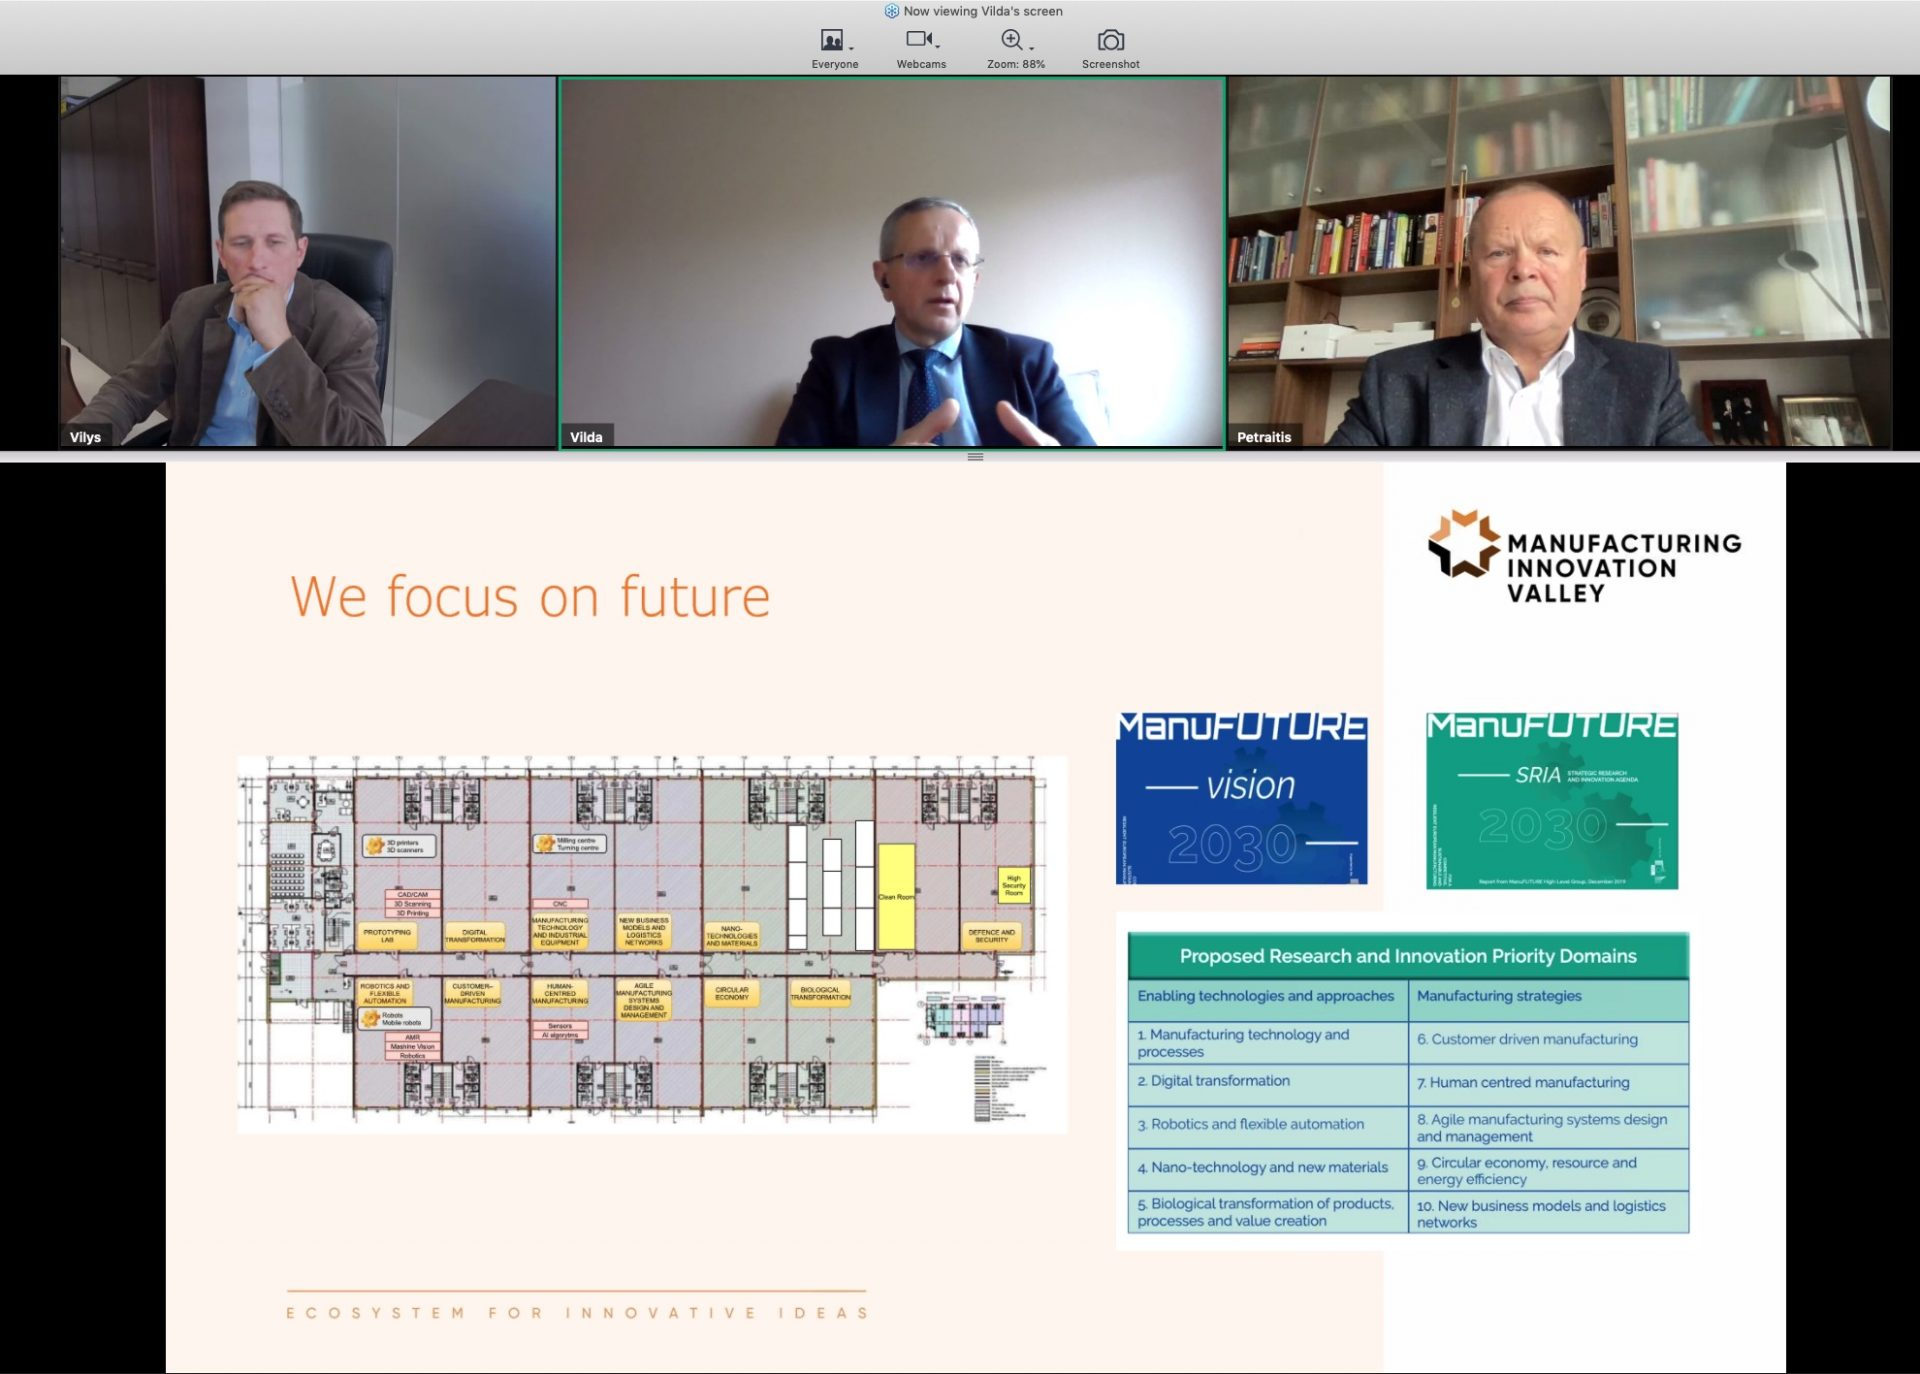 Manufacturing Innovation Valley was presented in I4MS webinar